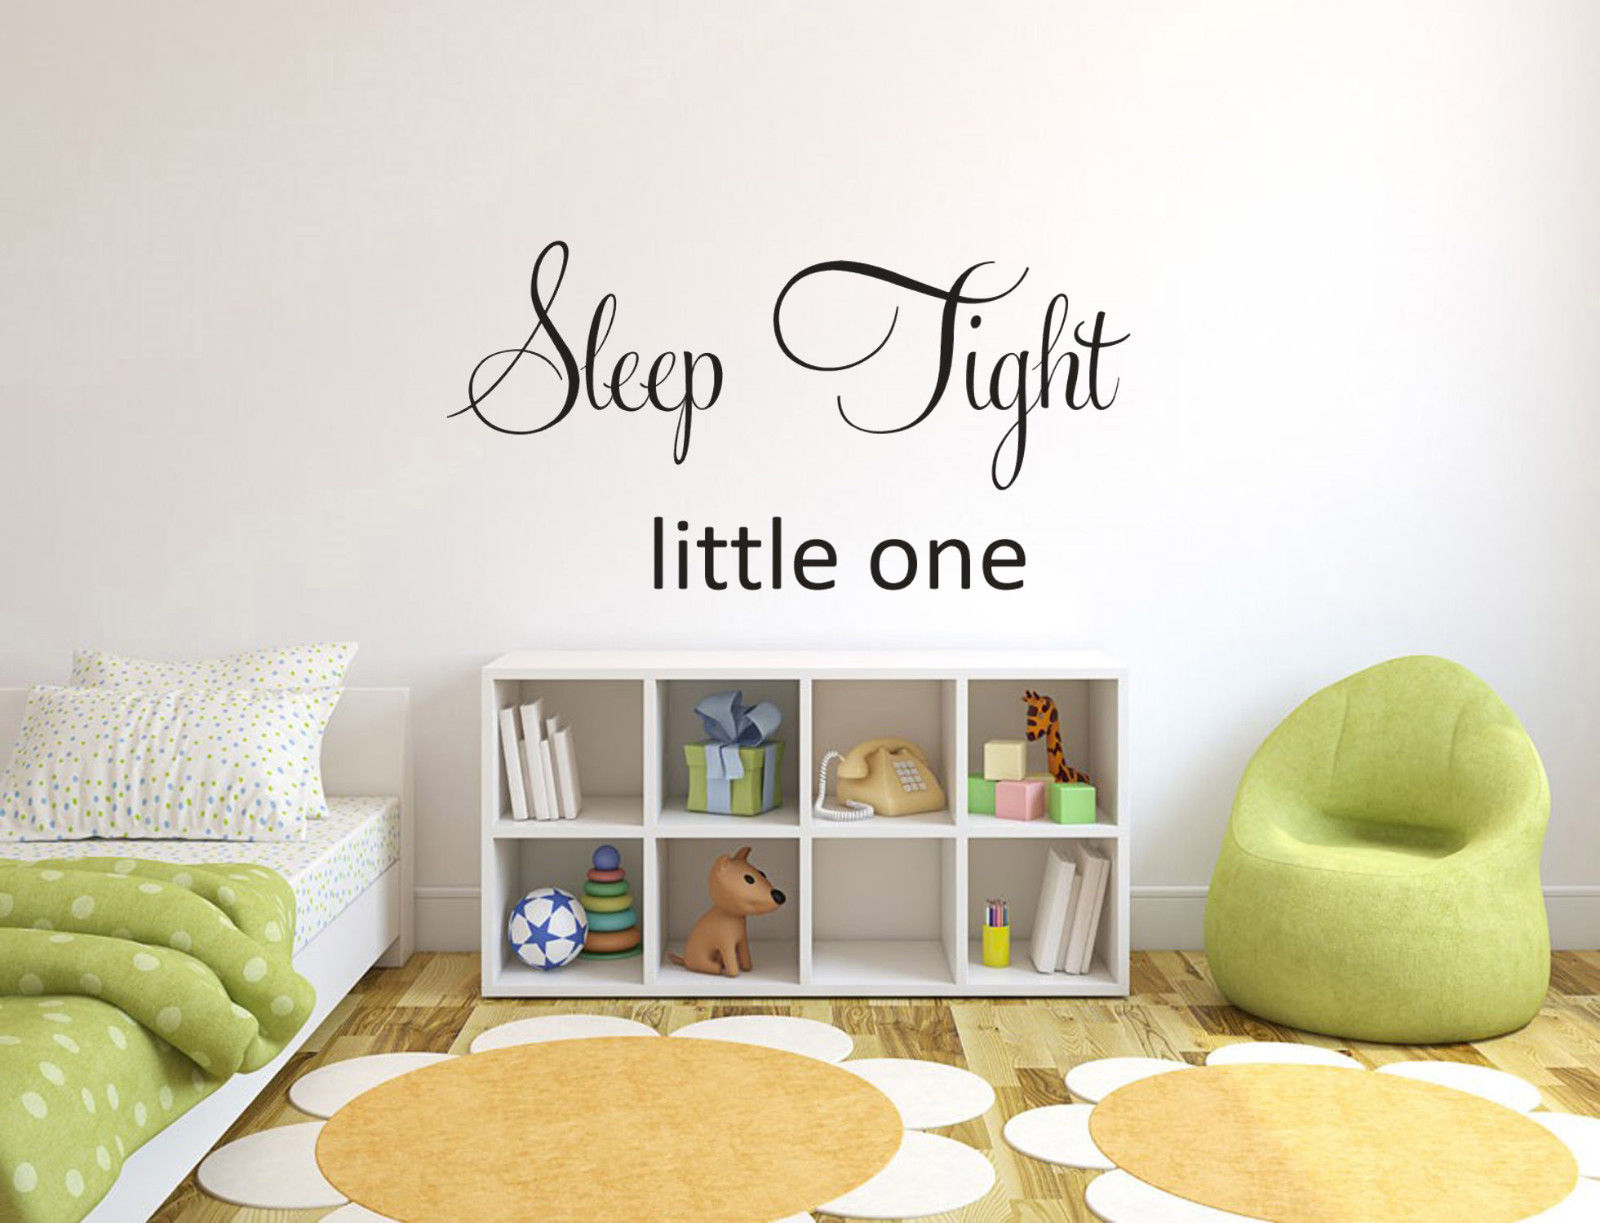 Sleep Tight Little One Baby Nursery Wall Decal Wall Art Stickers Wall Stickers